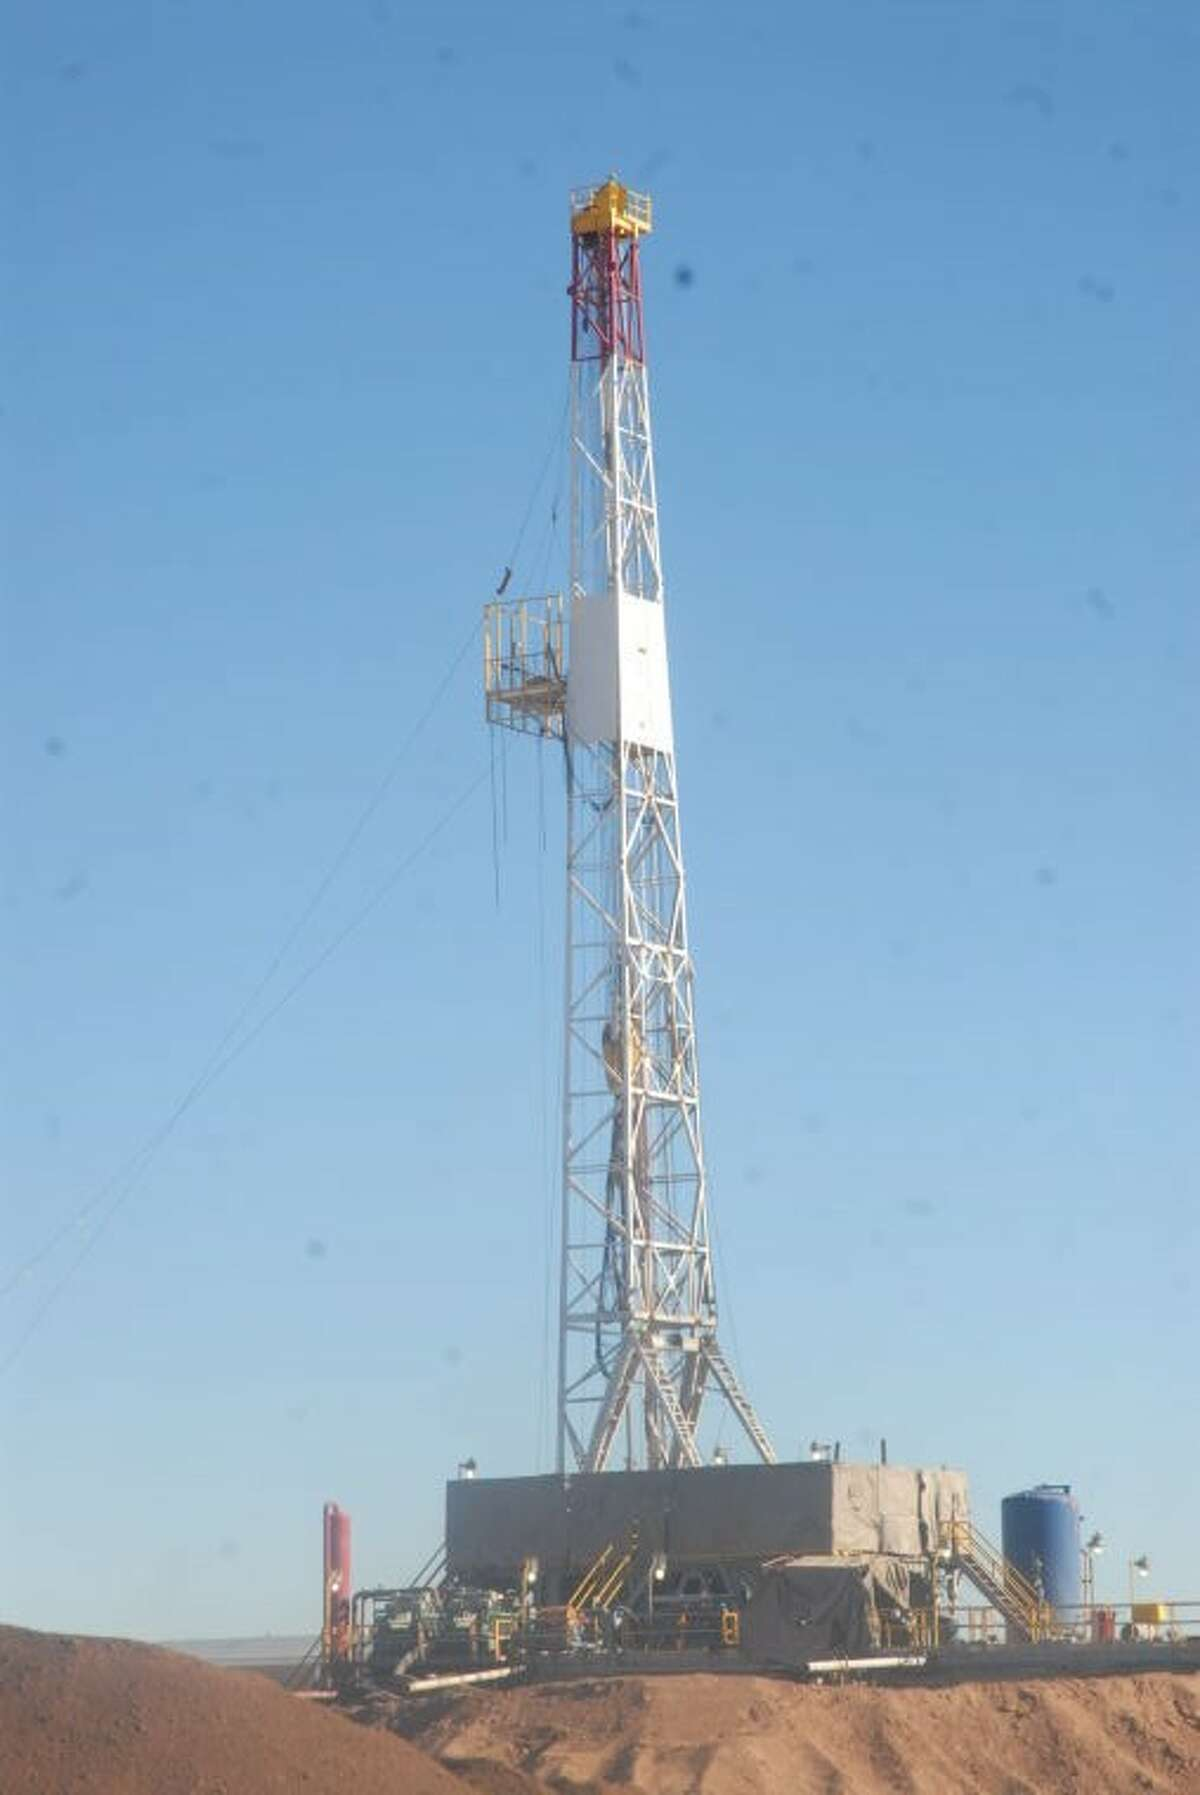 An exploratory drilling rig has been erected by Laredo Petroleum along the side of FM 400, midway between Plainview and Petersburg.